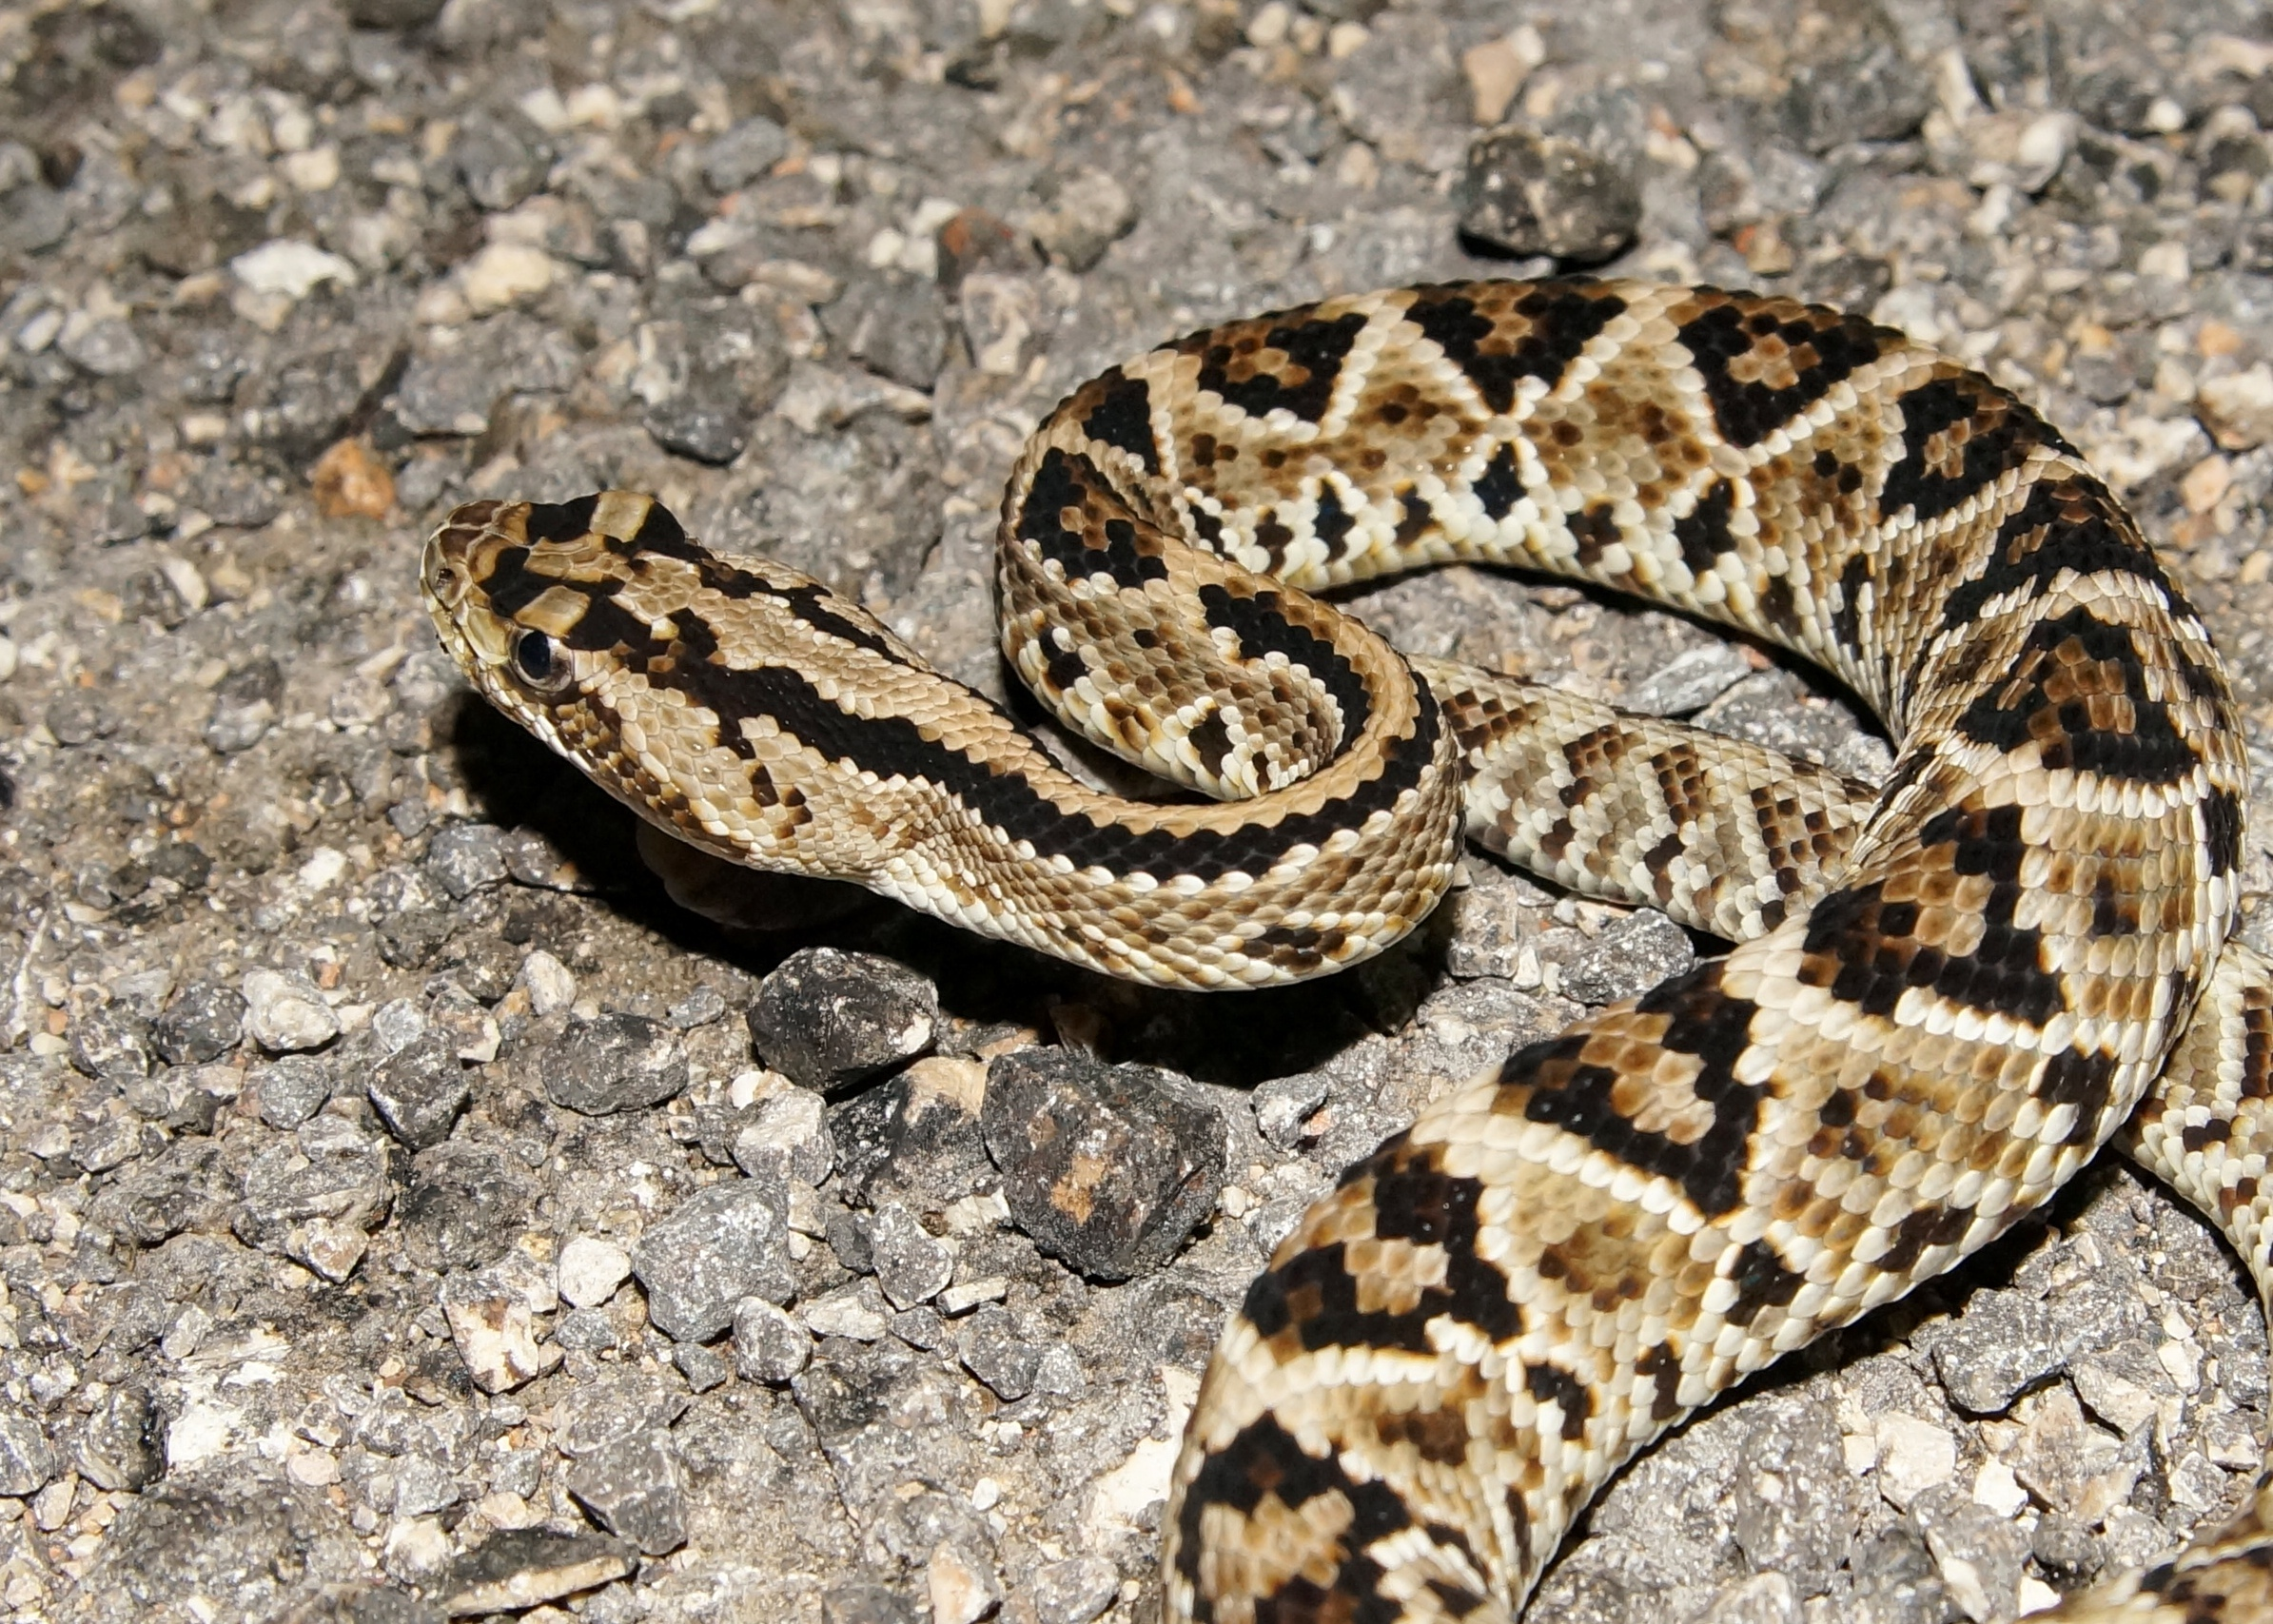 There are at least 32 species of rattlesnakes and 83 subspecies, divided between the two genera of Crotalus and Sistrurus. The thing that unites most rattlesnakes is their rattle, but this isn't so simple.